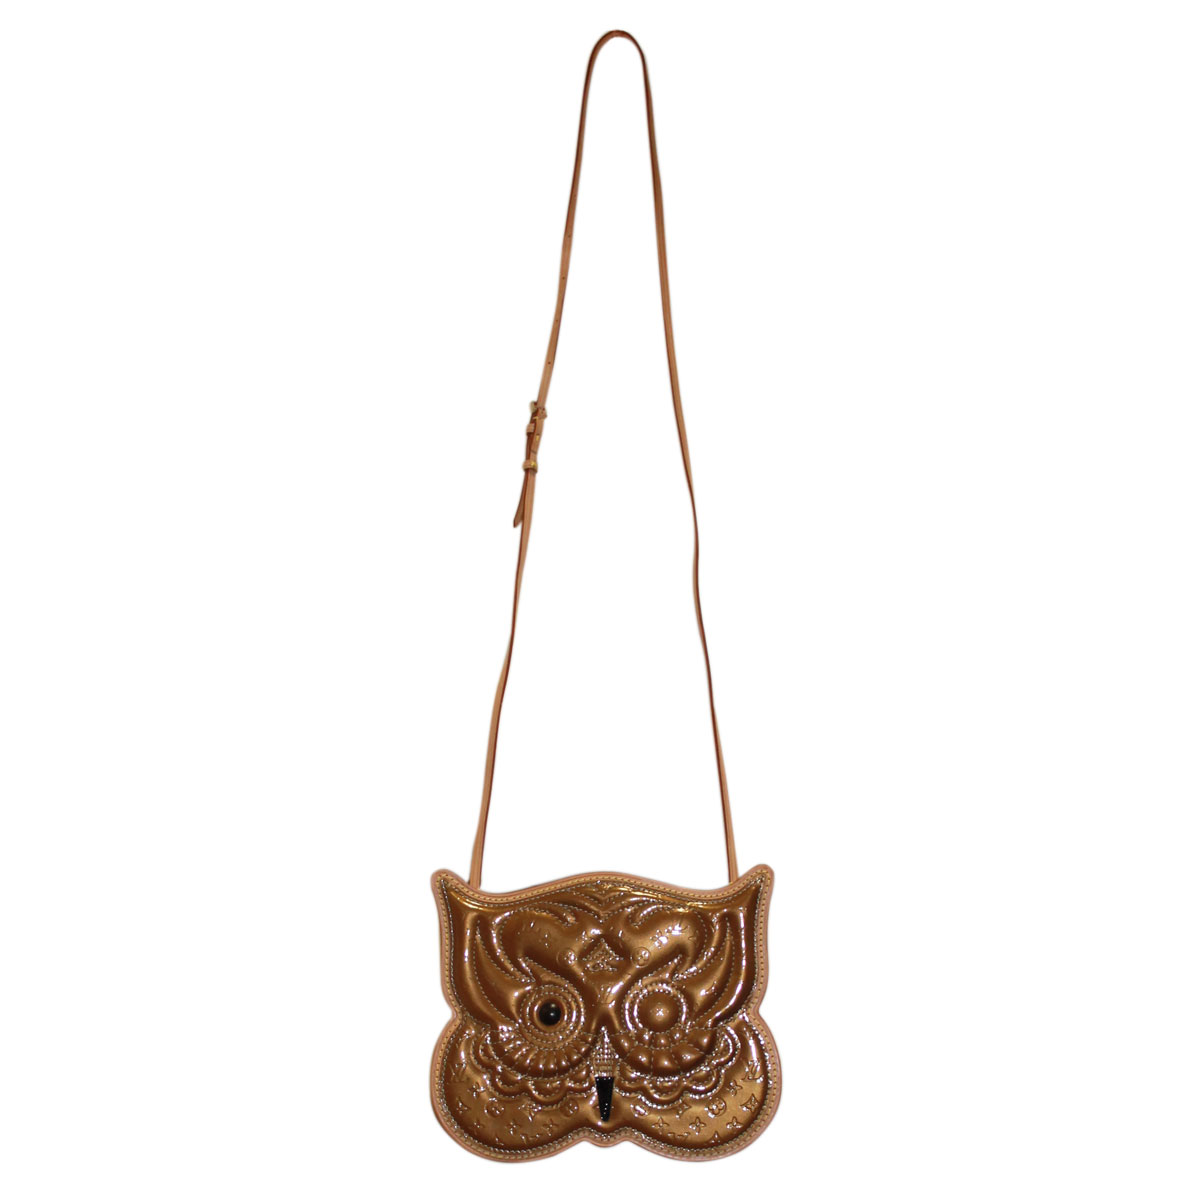 Limited Edition Louis Vuitton Owl Cross body bag